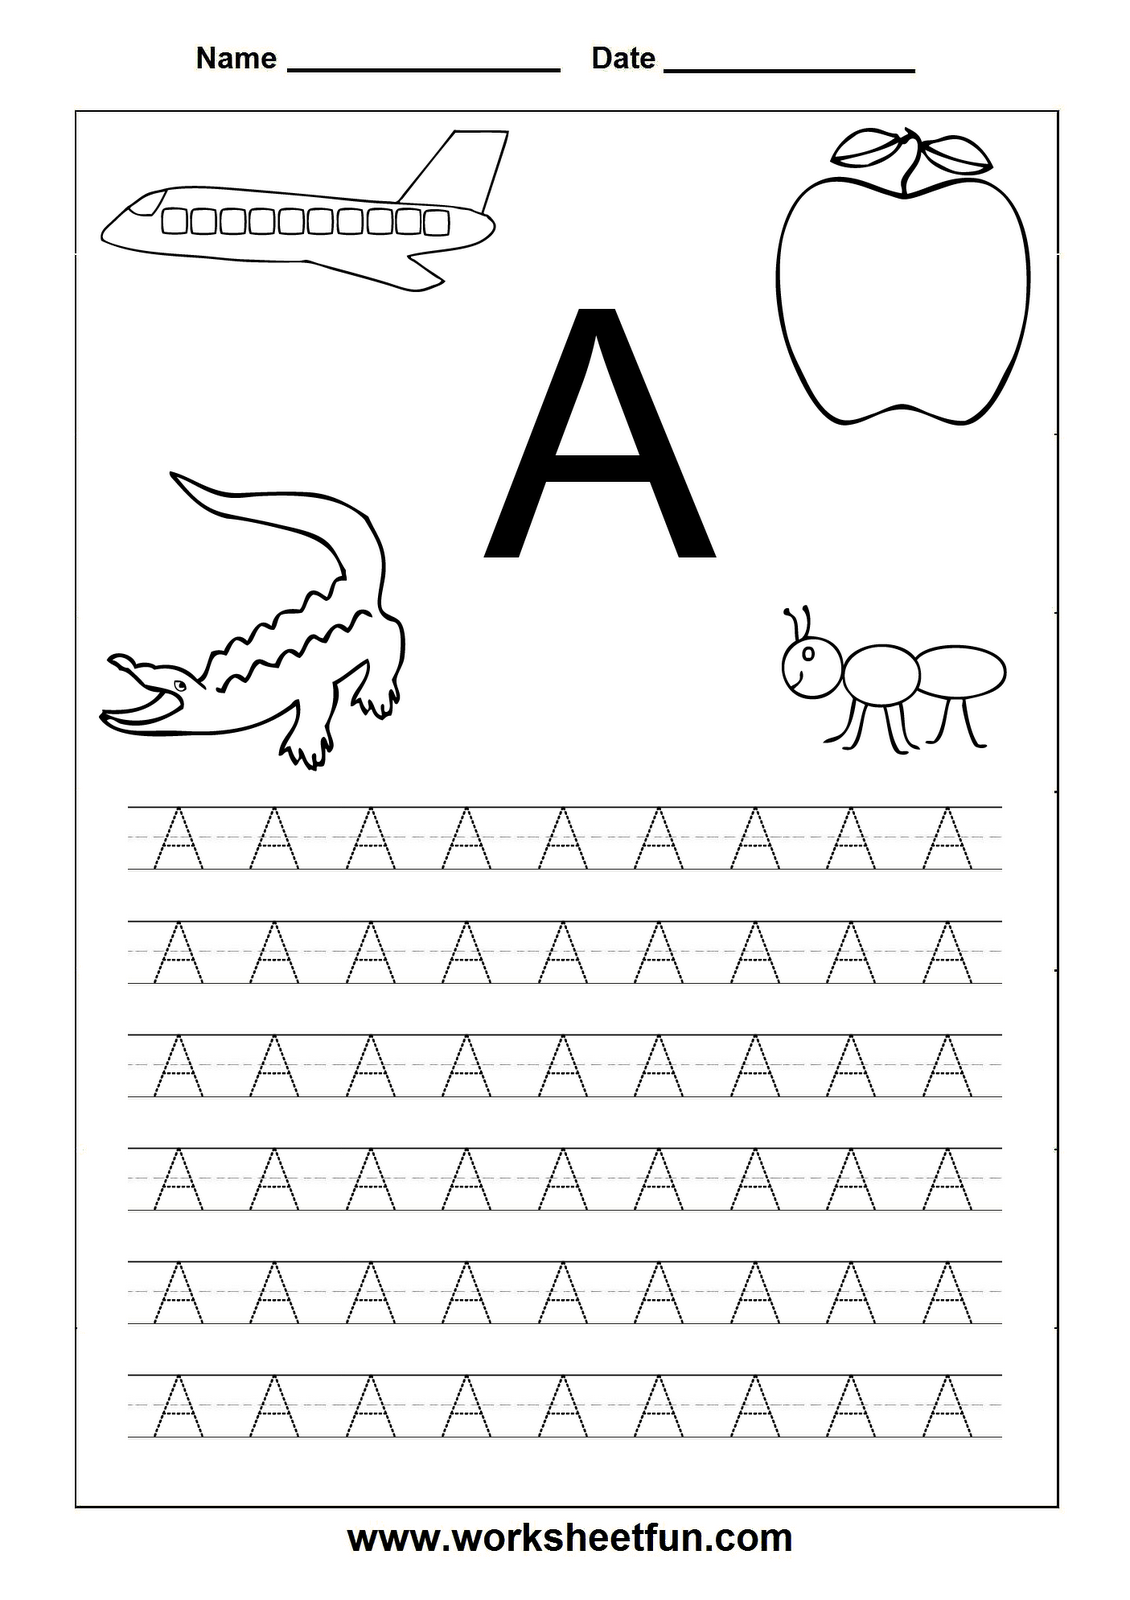 1000+ images about Letters on Pinterest | Letter Worksheets ...